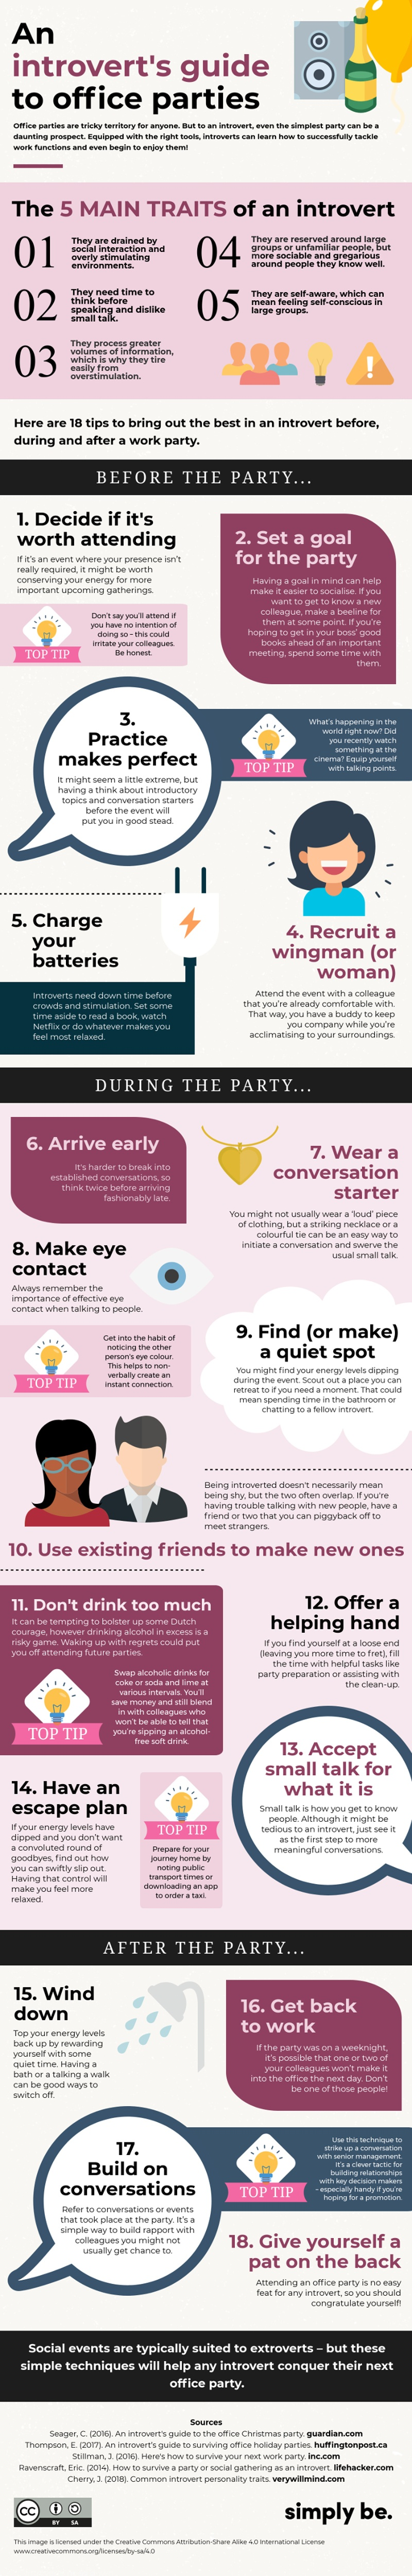 An infographic about surviving work Christmas parties when you're introverted